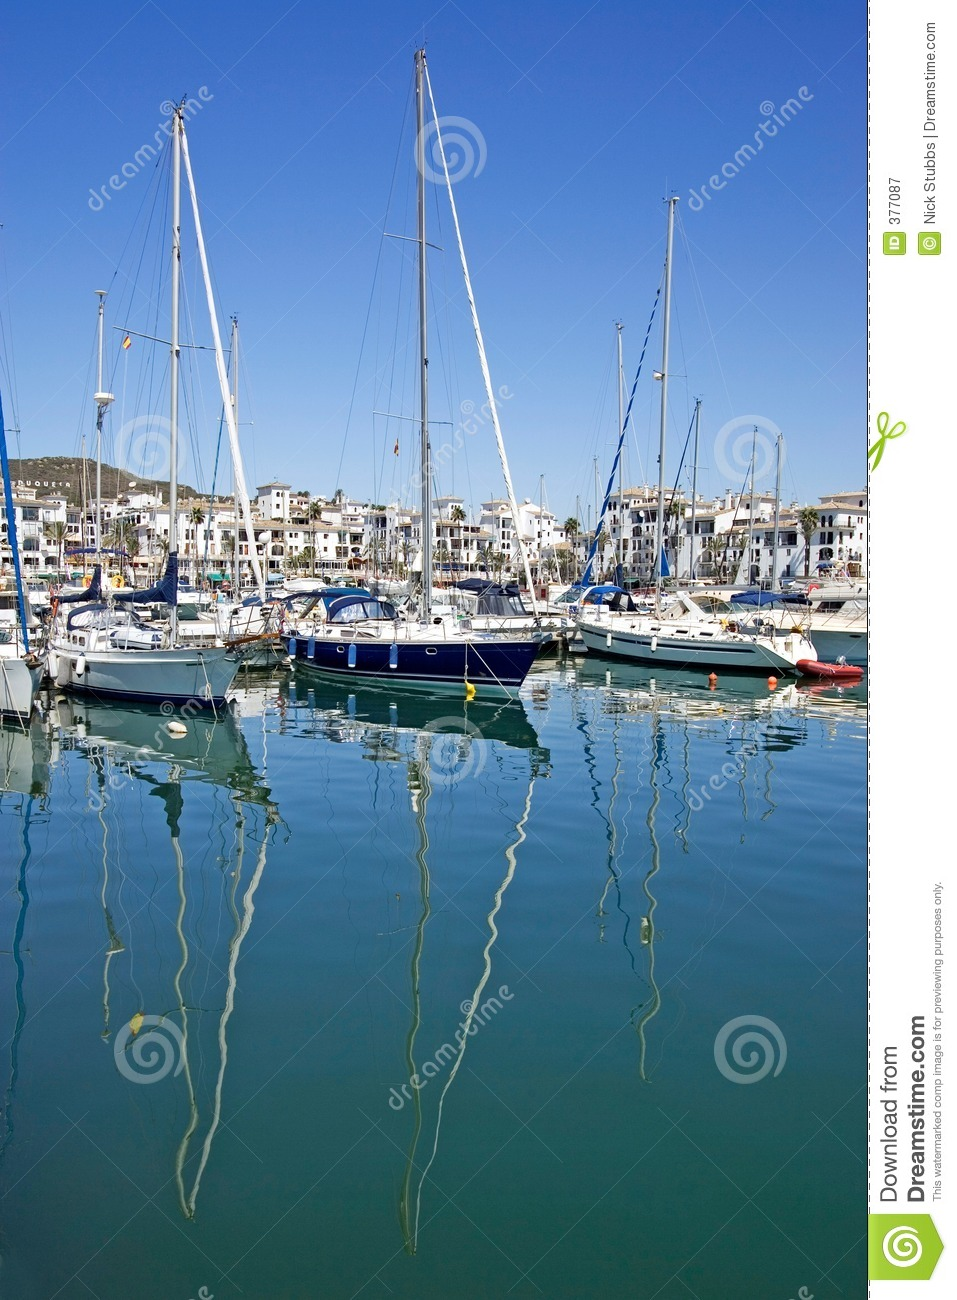 Tall luxury boats and yachts moored in Duquesa port in Spain on